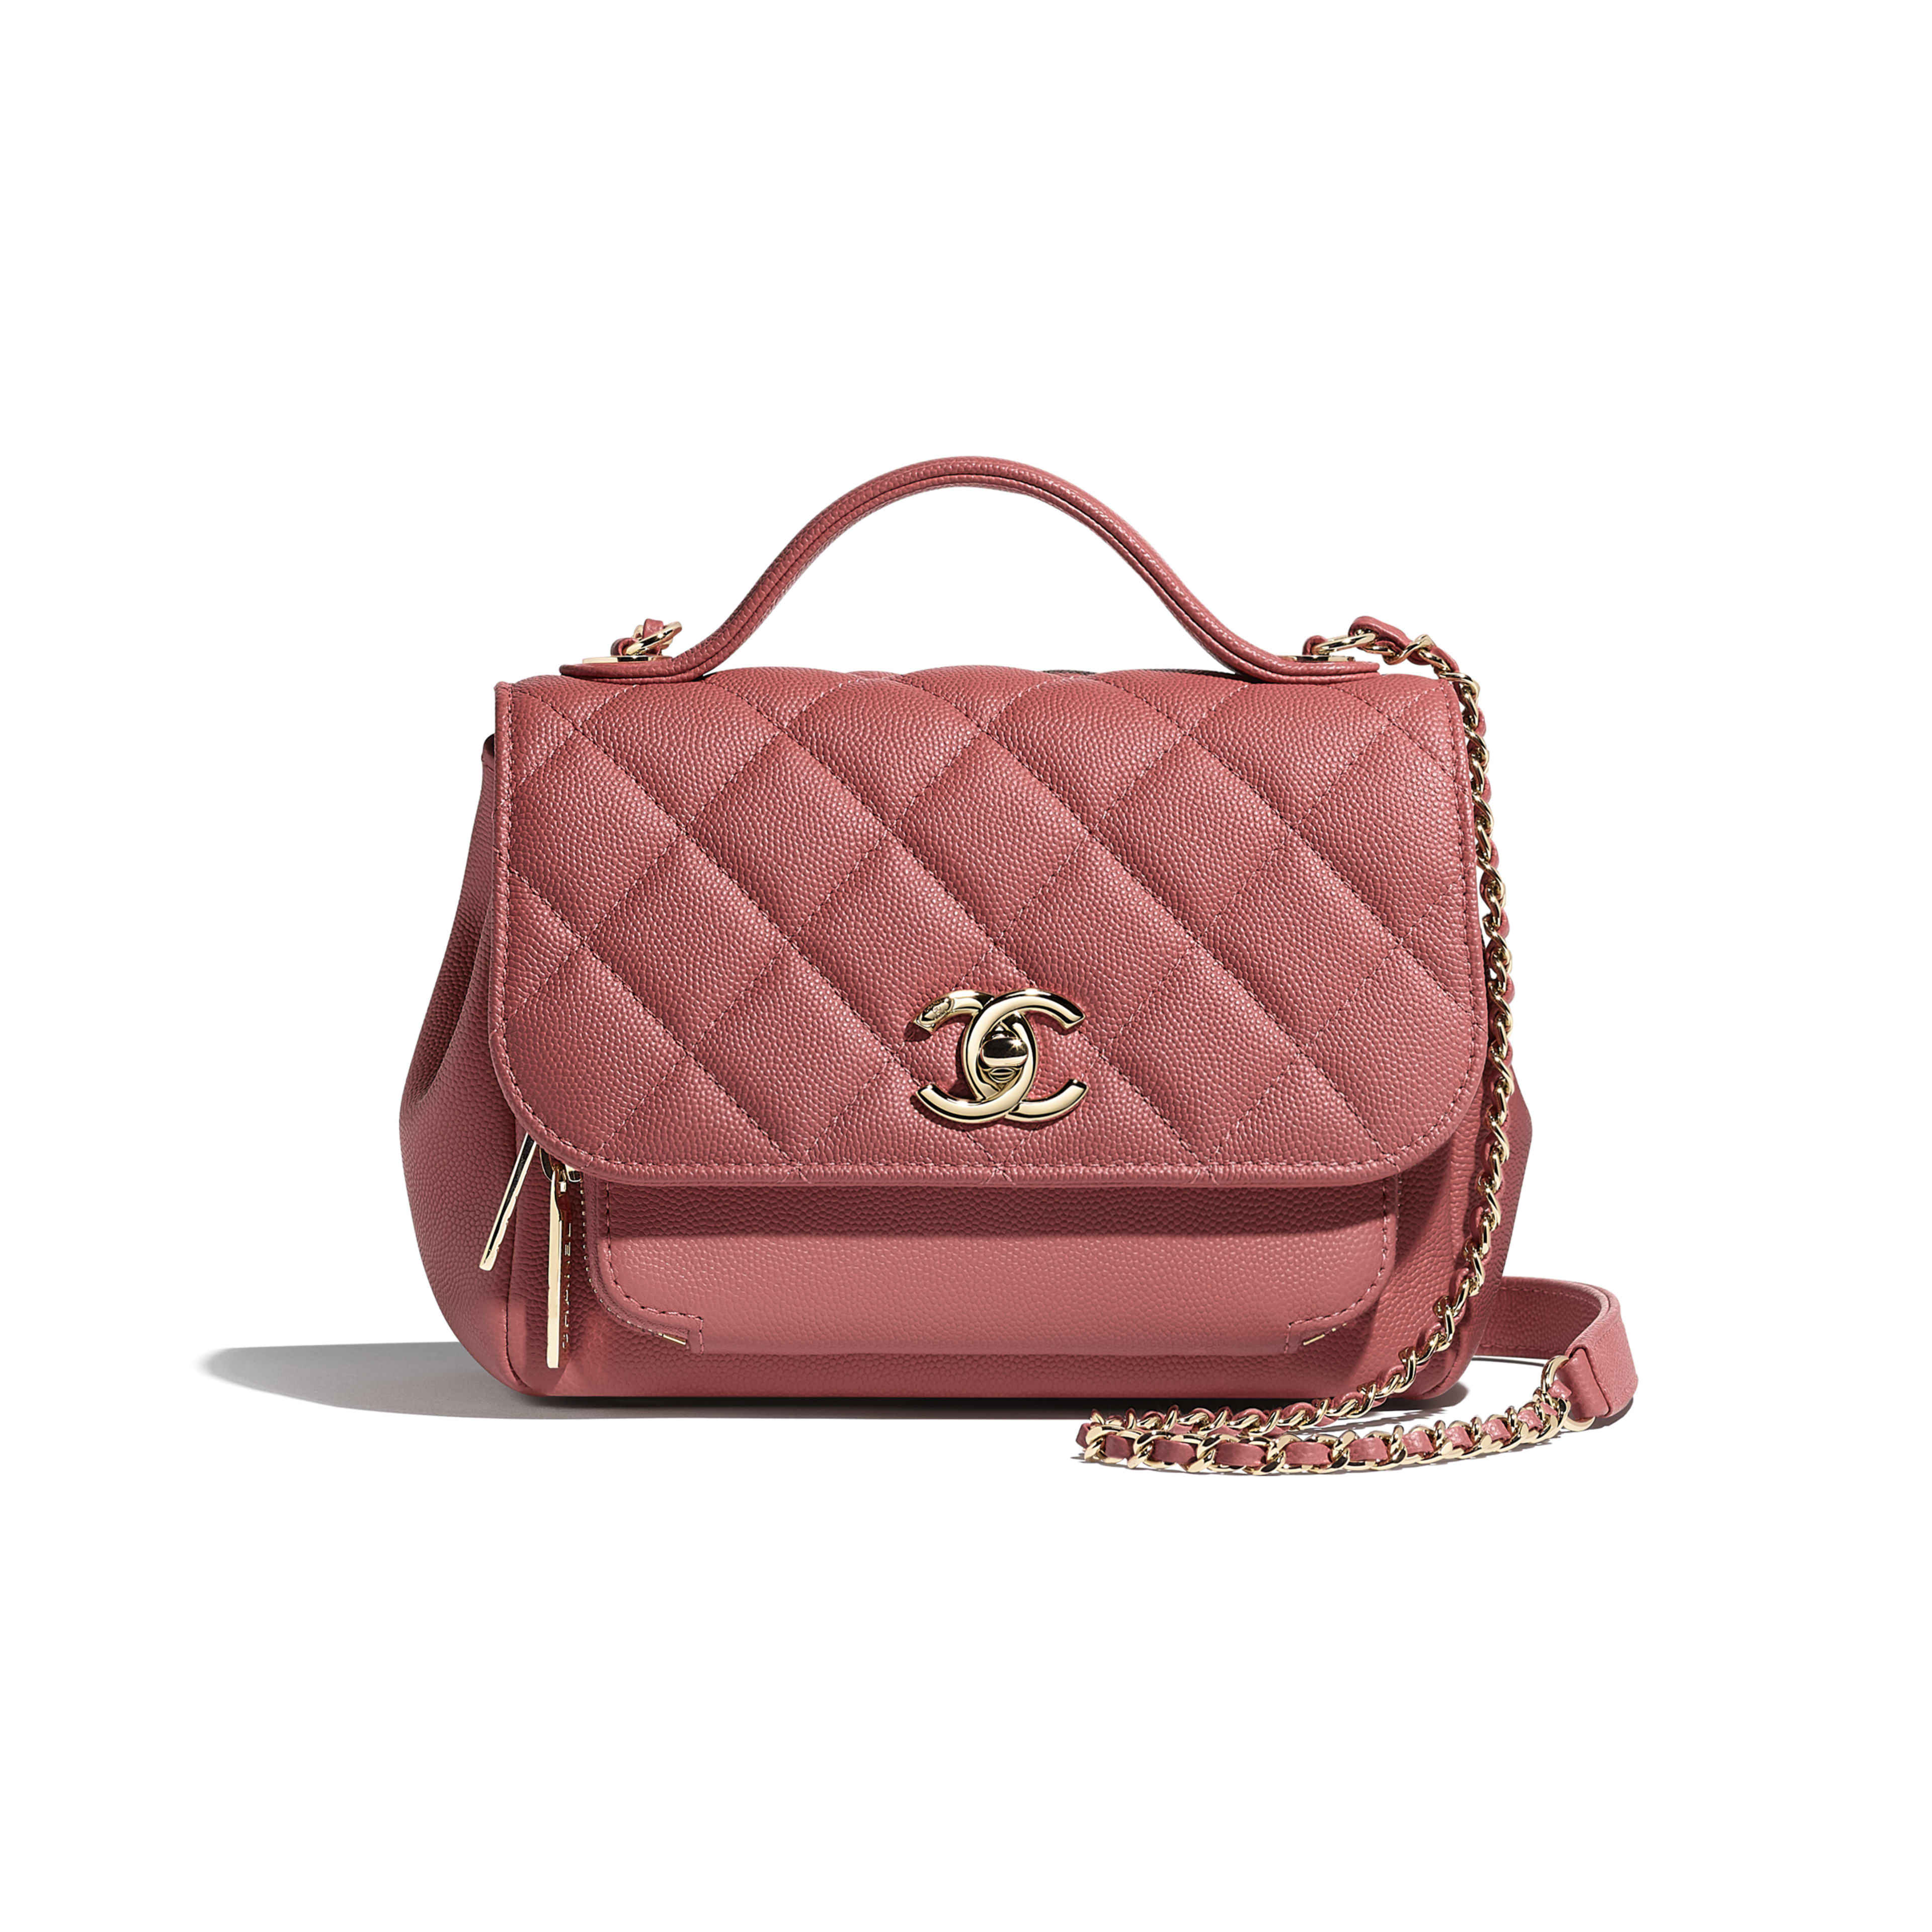 Flap Bag with Top Handle - Pink - Grained Calfskin & Gold-Tone Metal - Default view - see full sized version